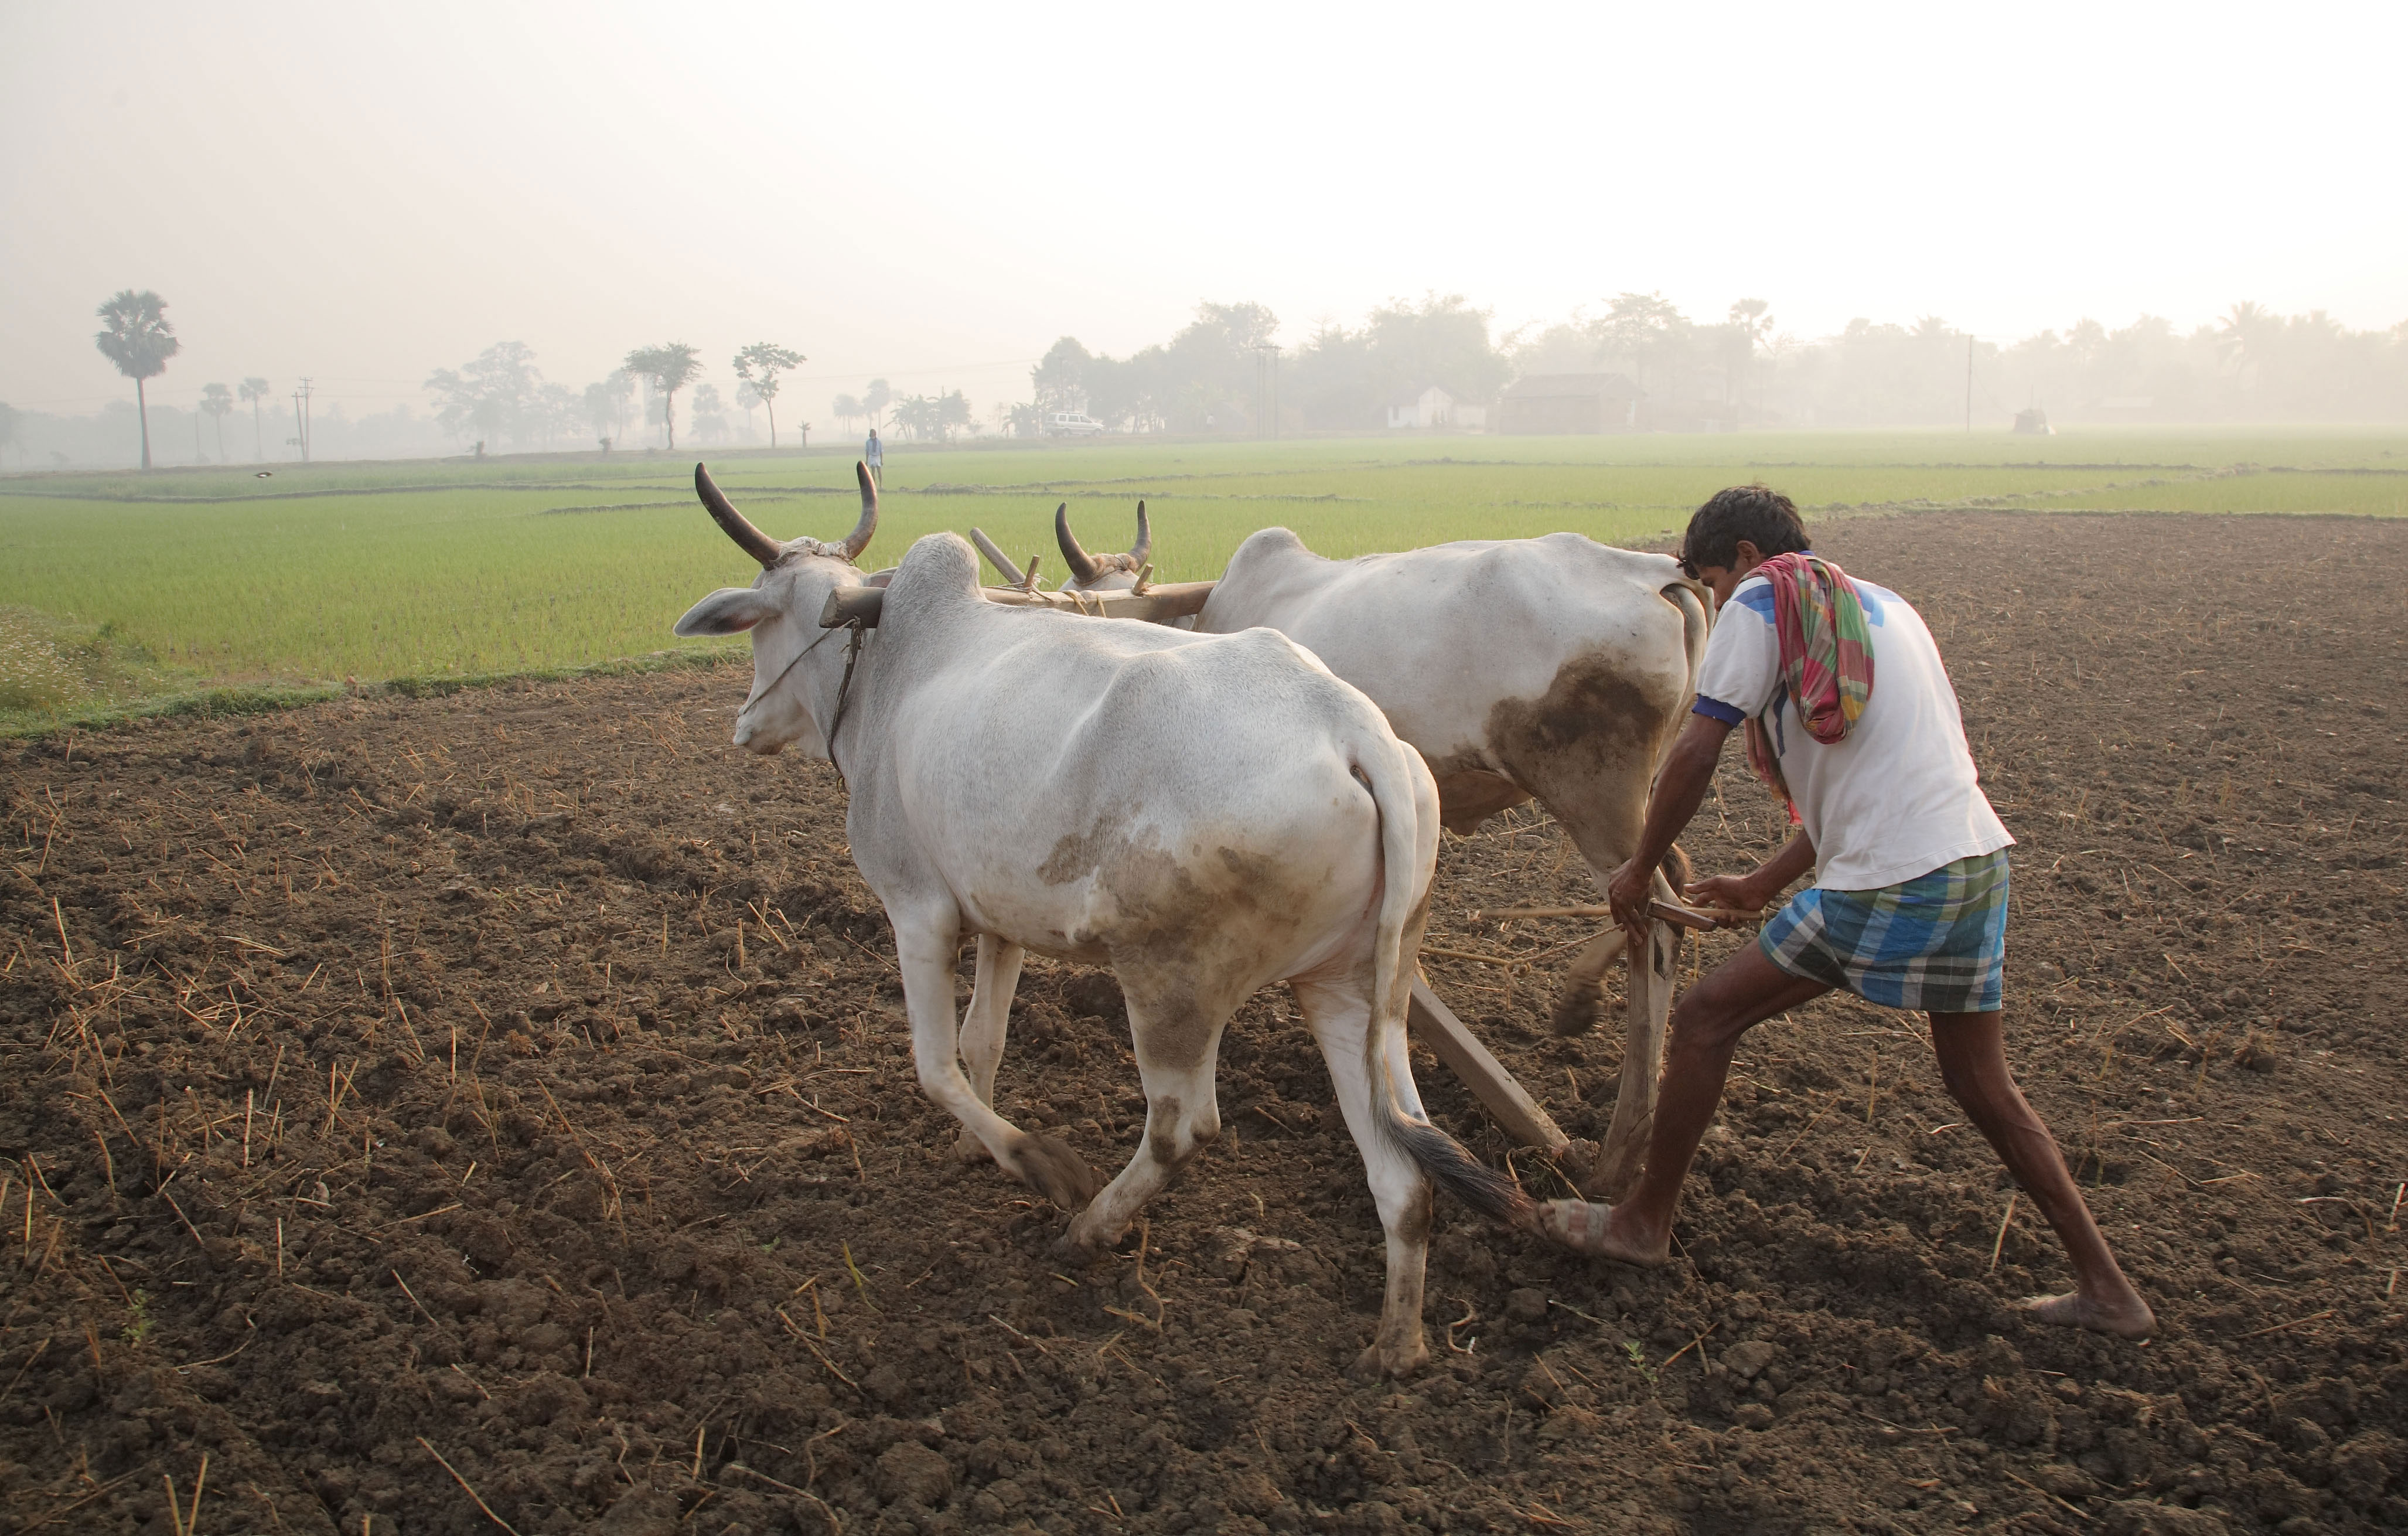 Agriculture in India. Credit: Wikimedia Commons